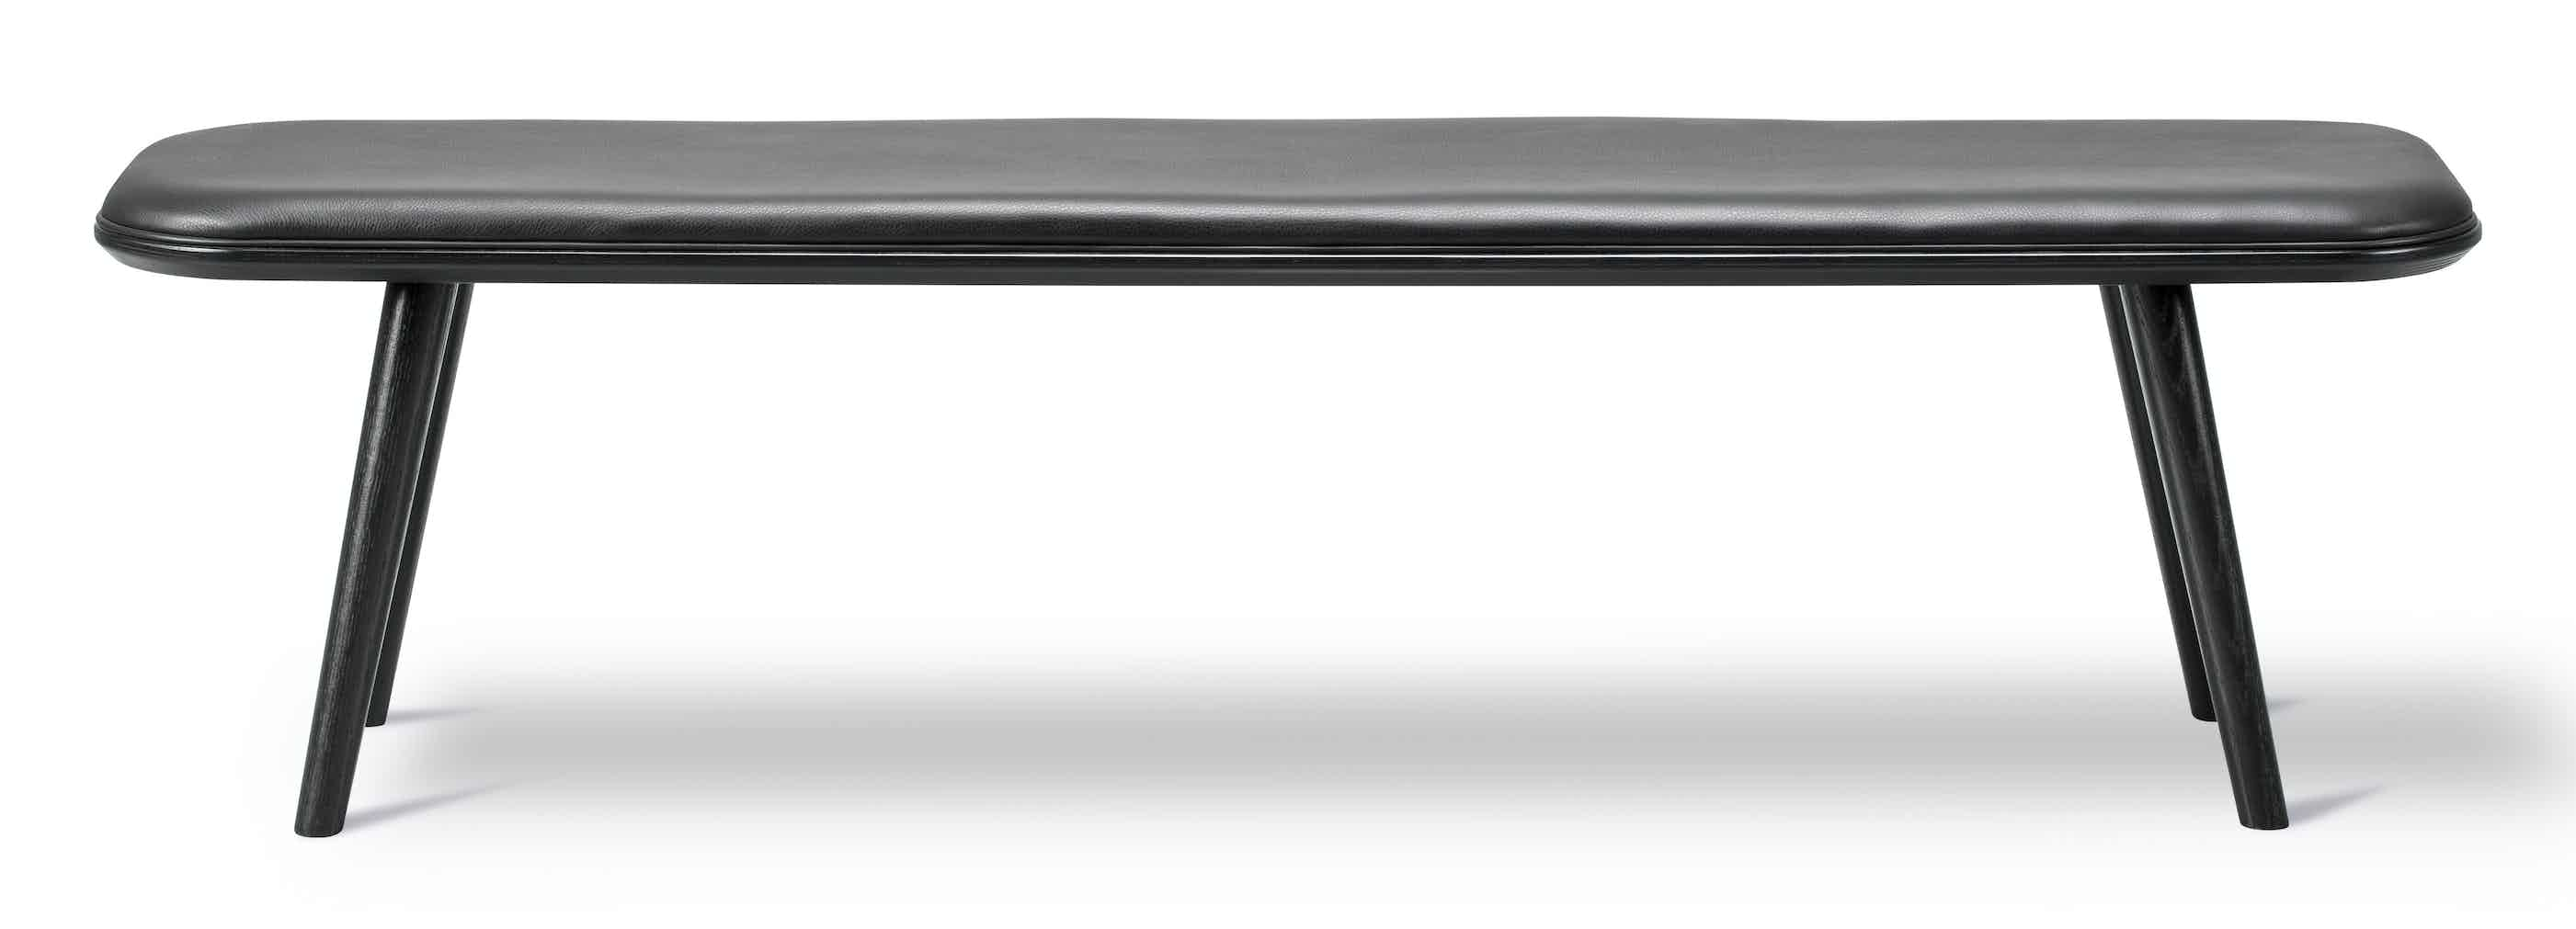 Fredericia Furniture Spine Wood Bench Front Haute Living